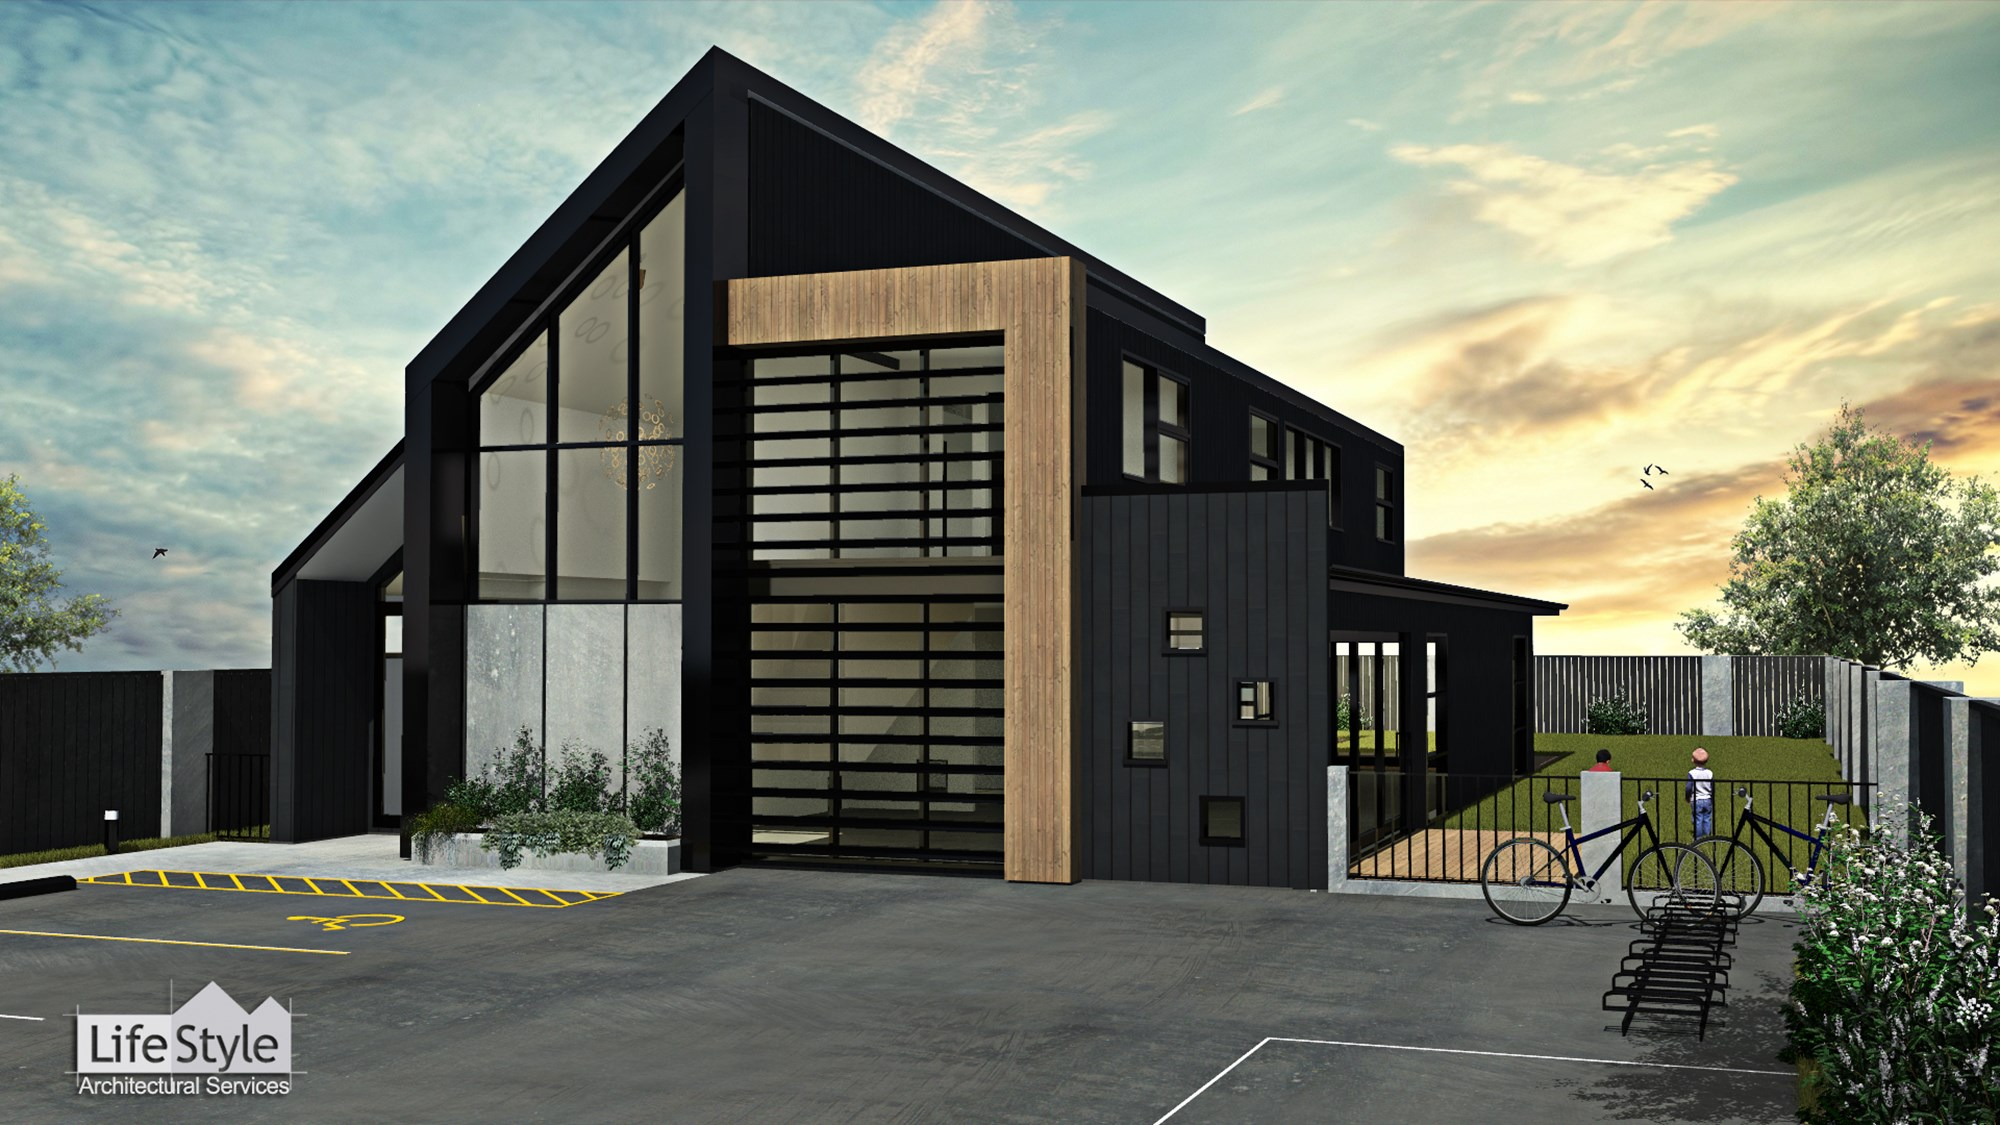 Feasibility / Design / Resource - Building Consent  - 304 Papanui Road - Christchurch (3)